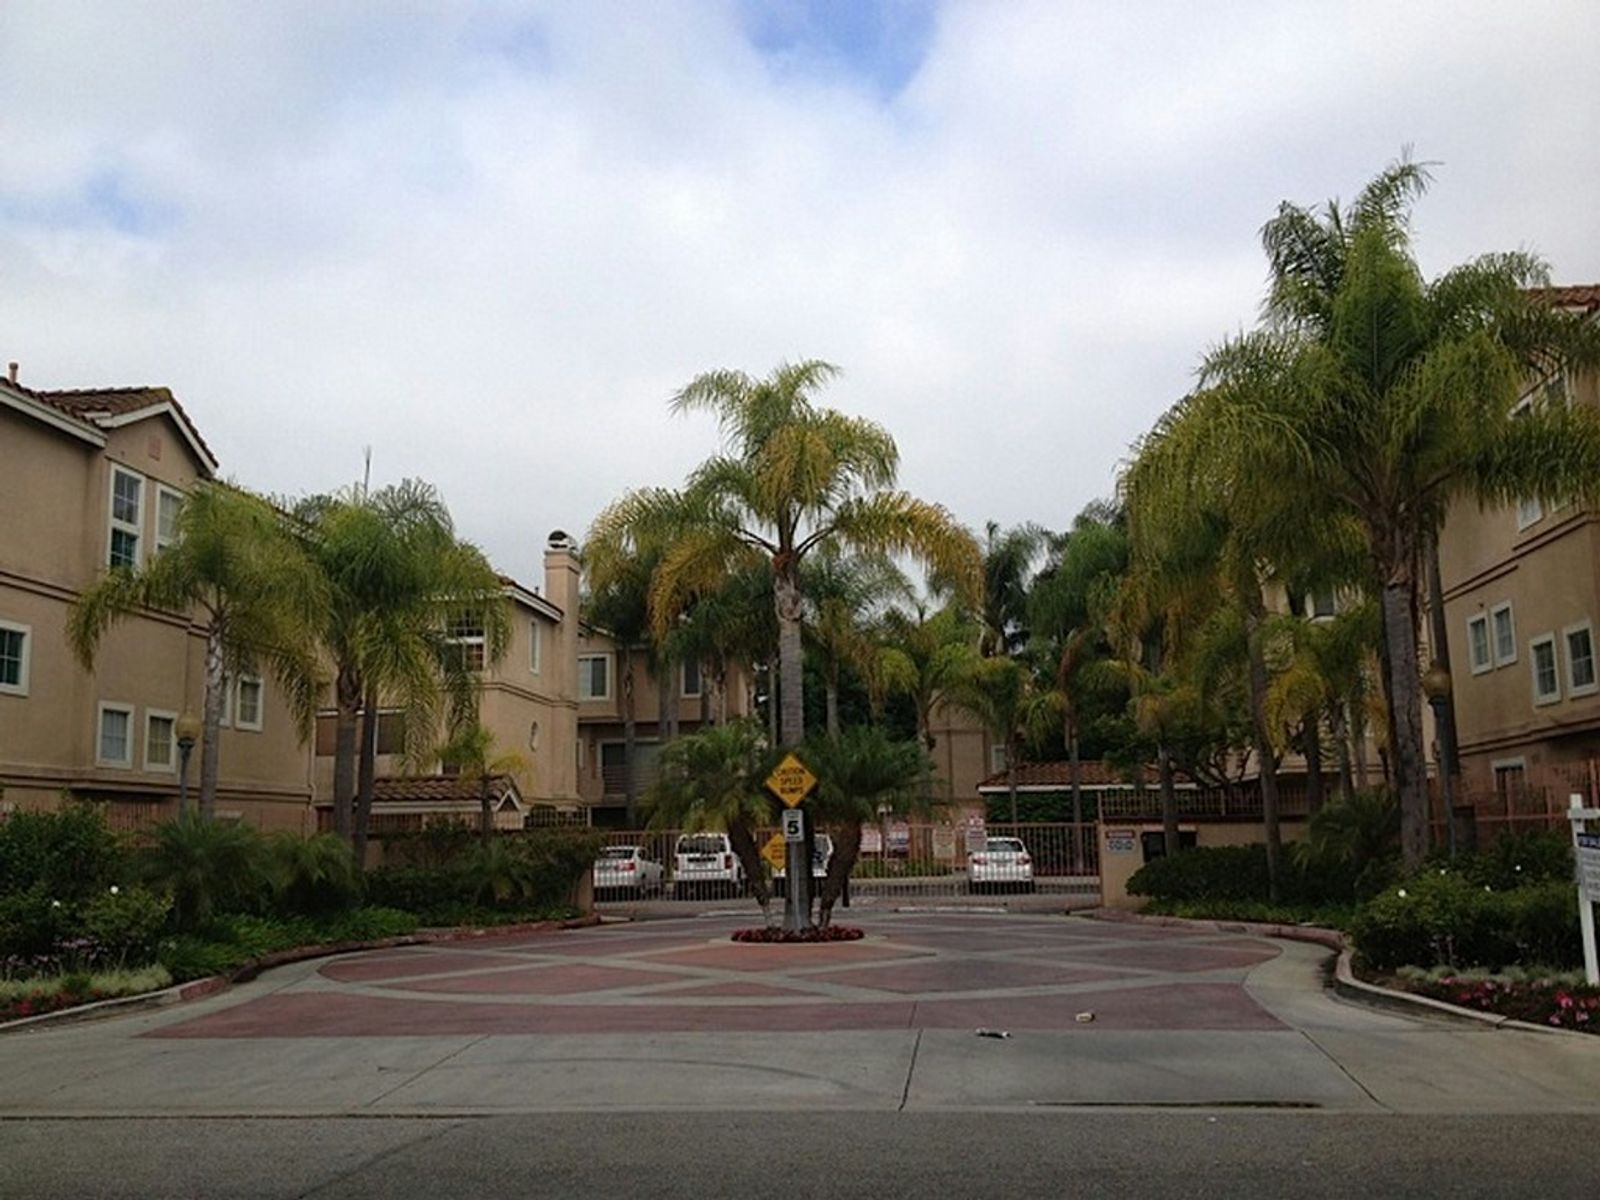 Townhome Living Adjacent to Beach Cities, Hawthorne CA Townhouse - Los Angeles Real Estate